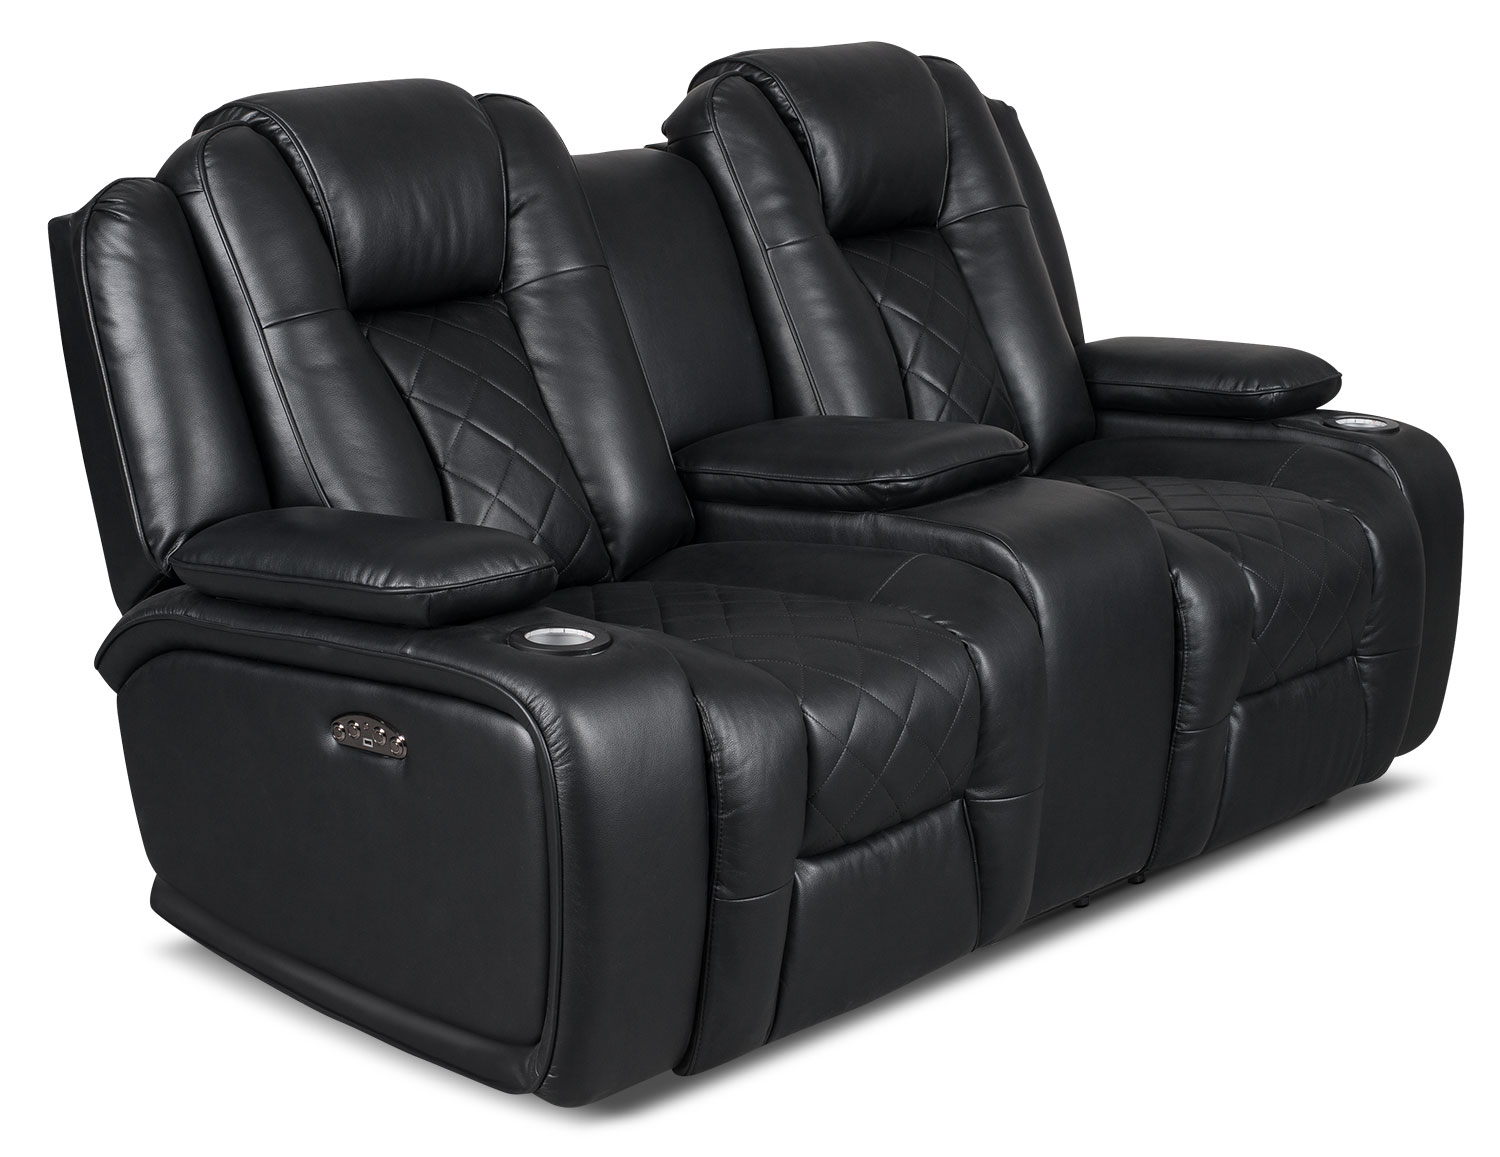 Lonzo Leather Look Fabric Power Reclining Loveseat Black United Furniture Warehouse